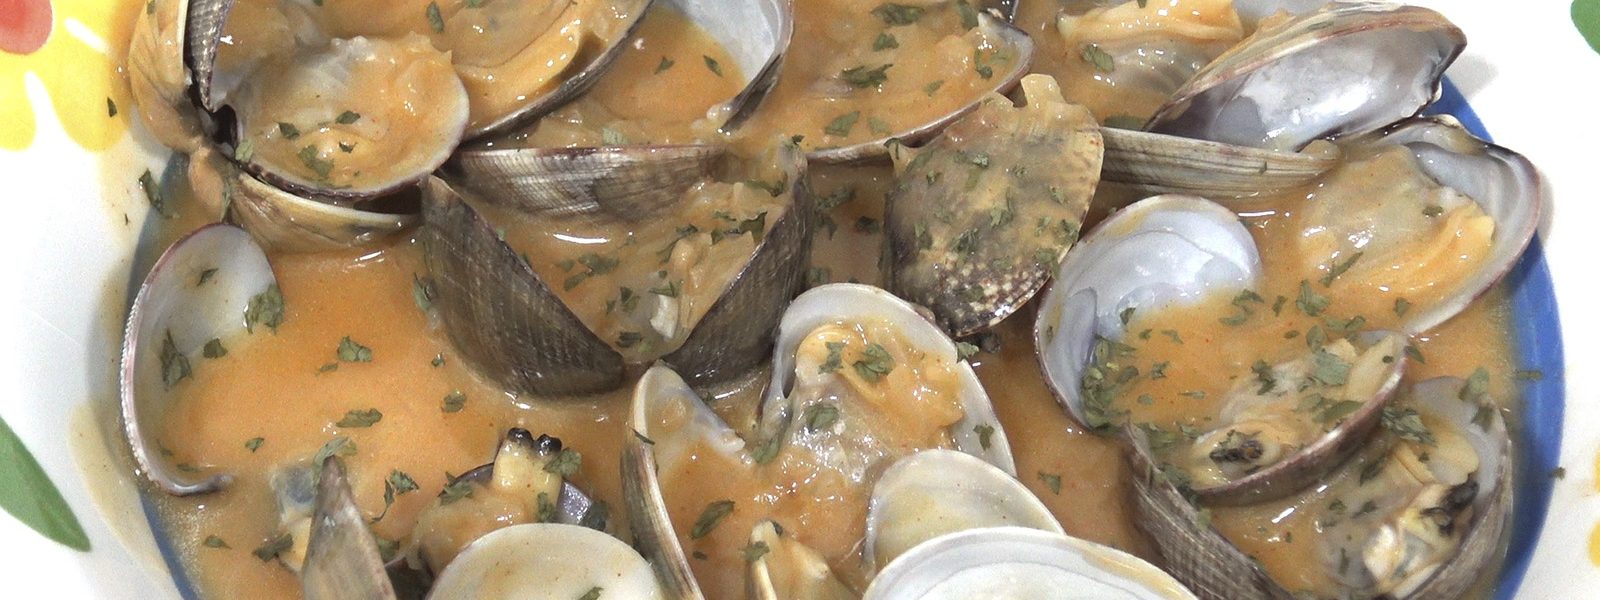 Marinera clams 2